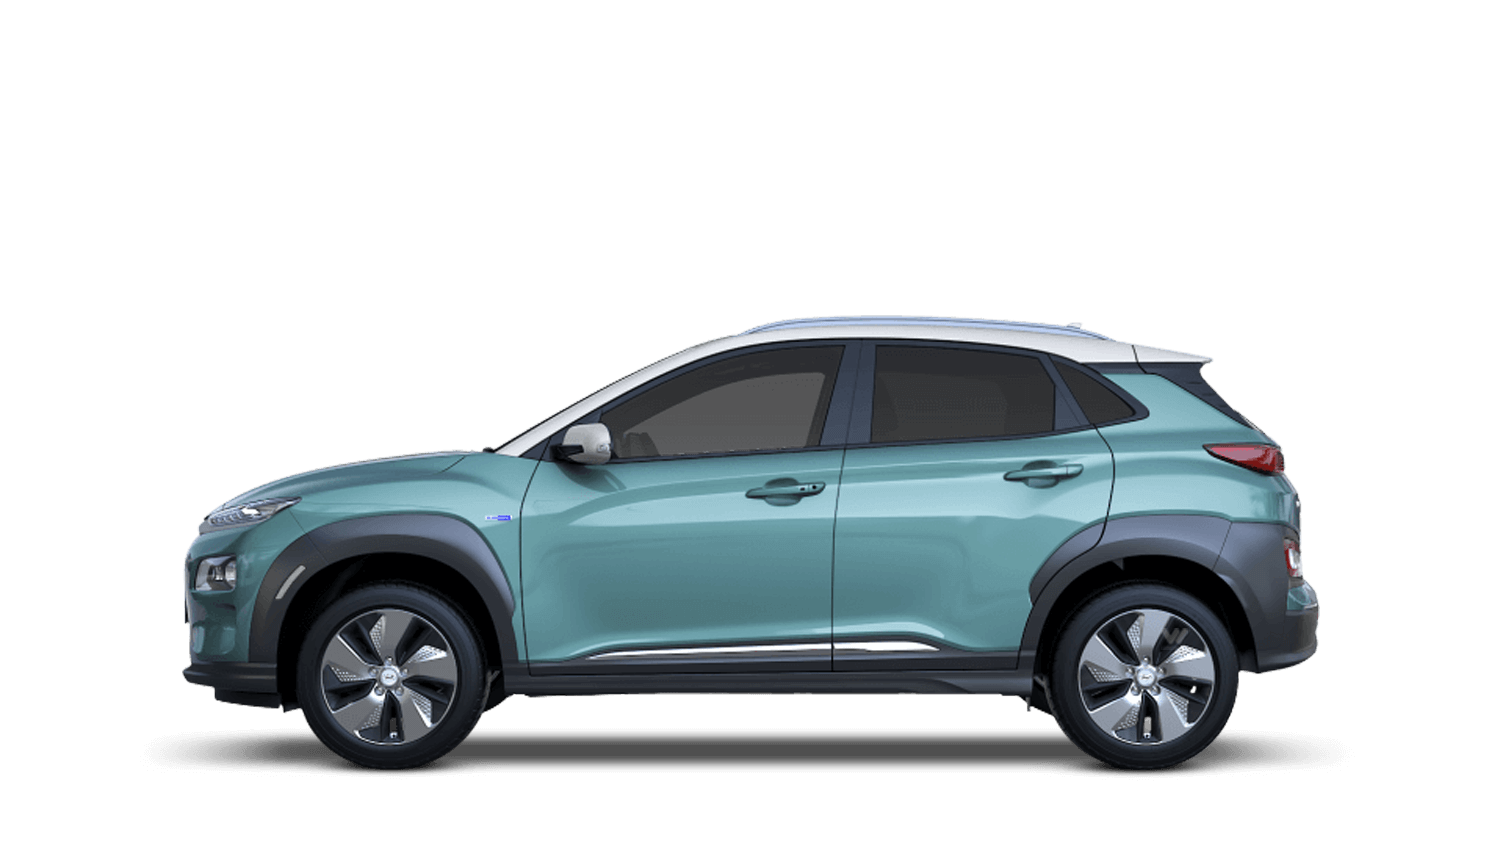 Ceramic Blue Hyundai KONA Electric